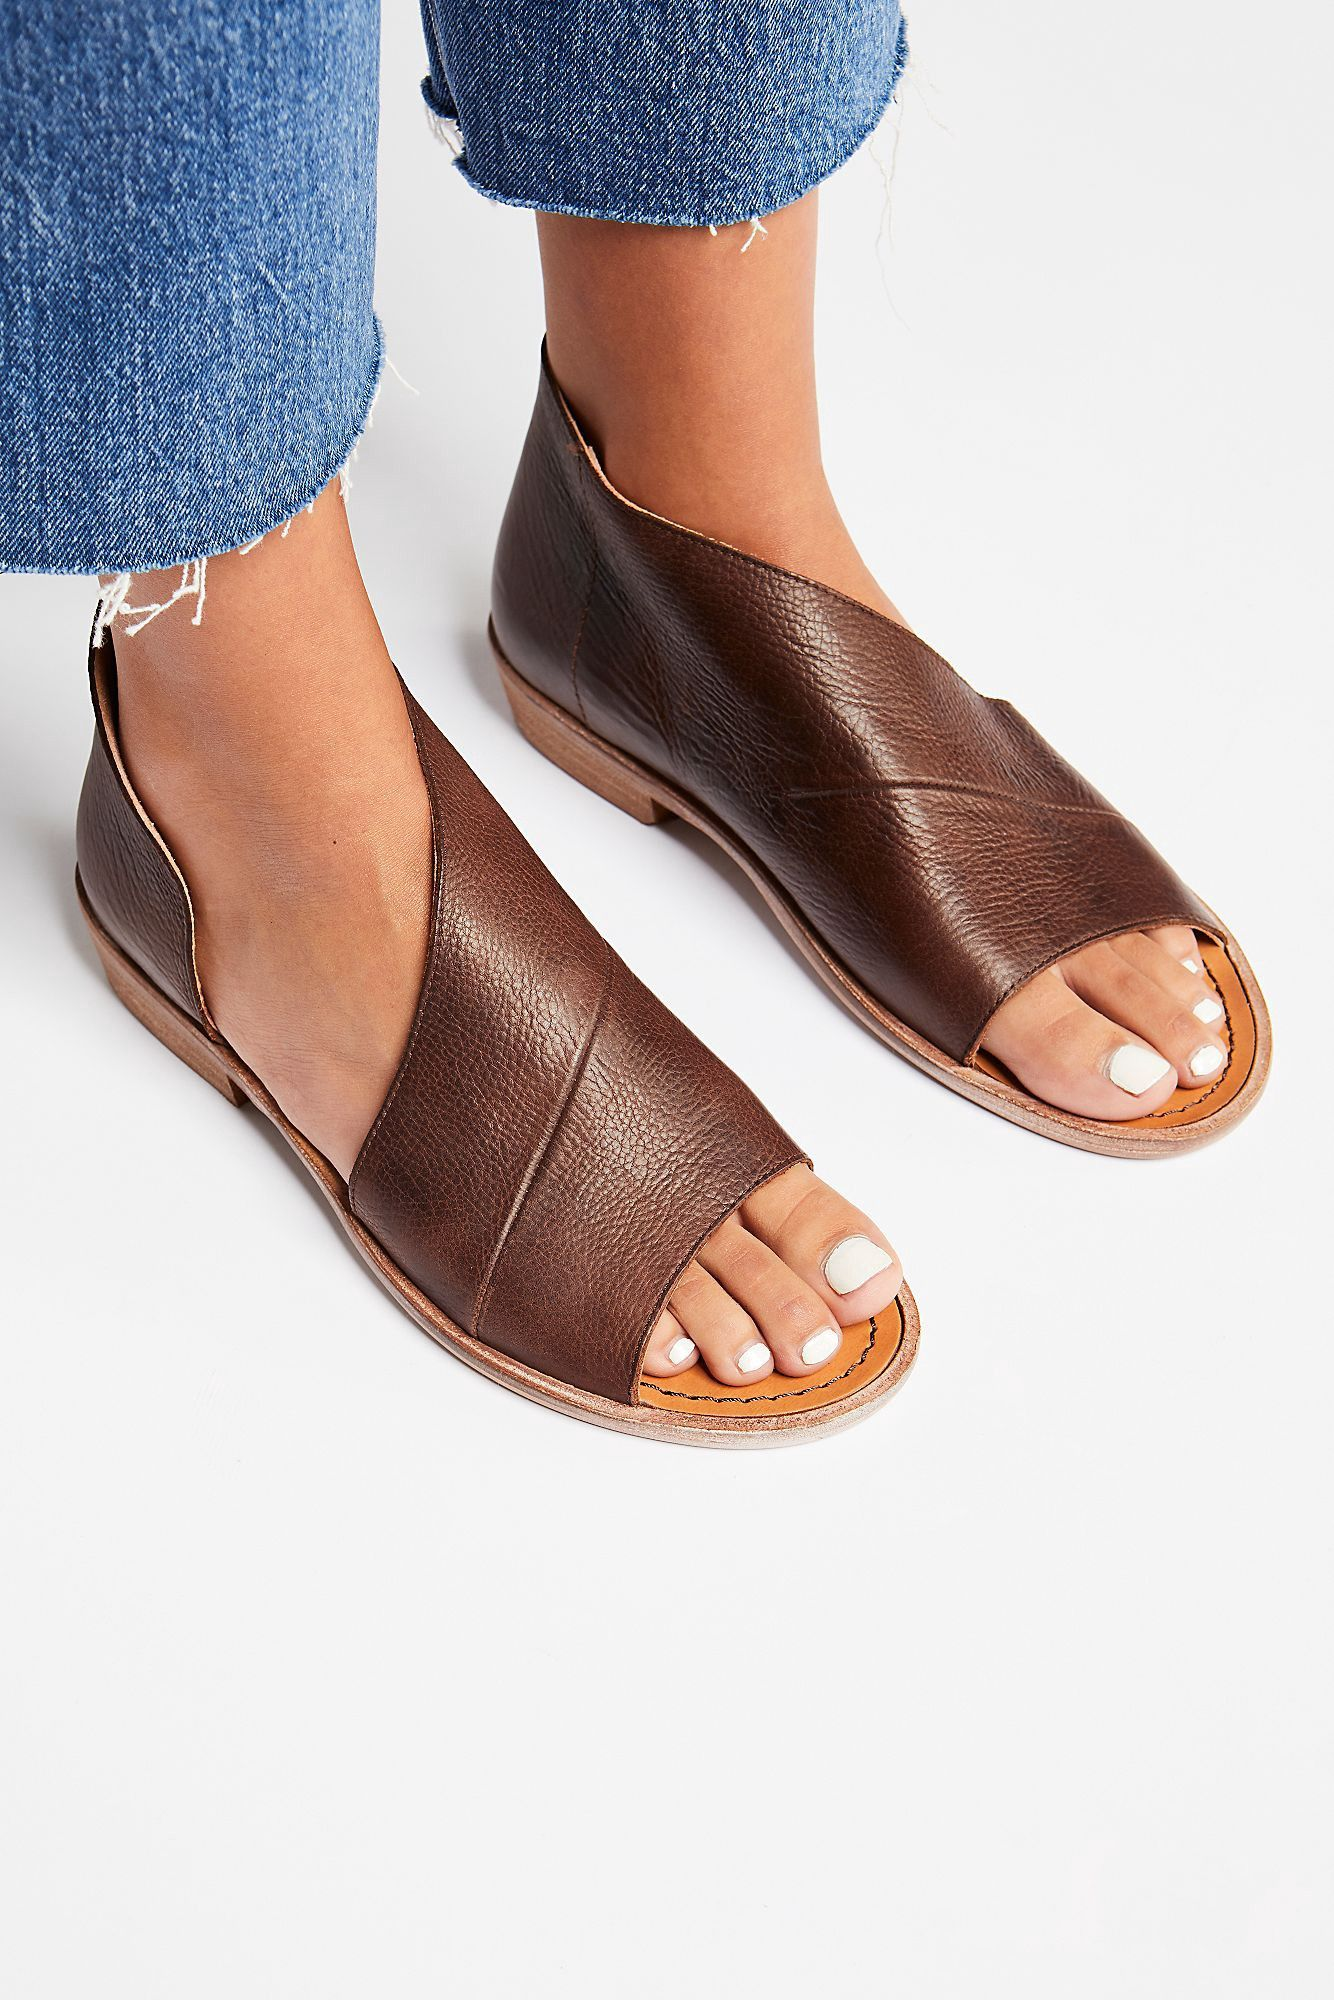 9bee1e5c8f2 Free People Mont Blanc Sandal - Chocolate 35 Euro in 2019